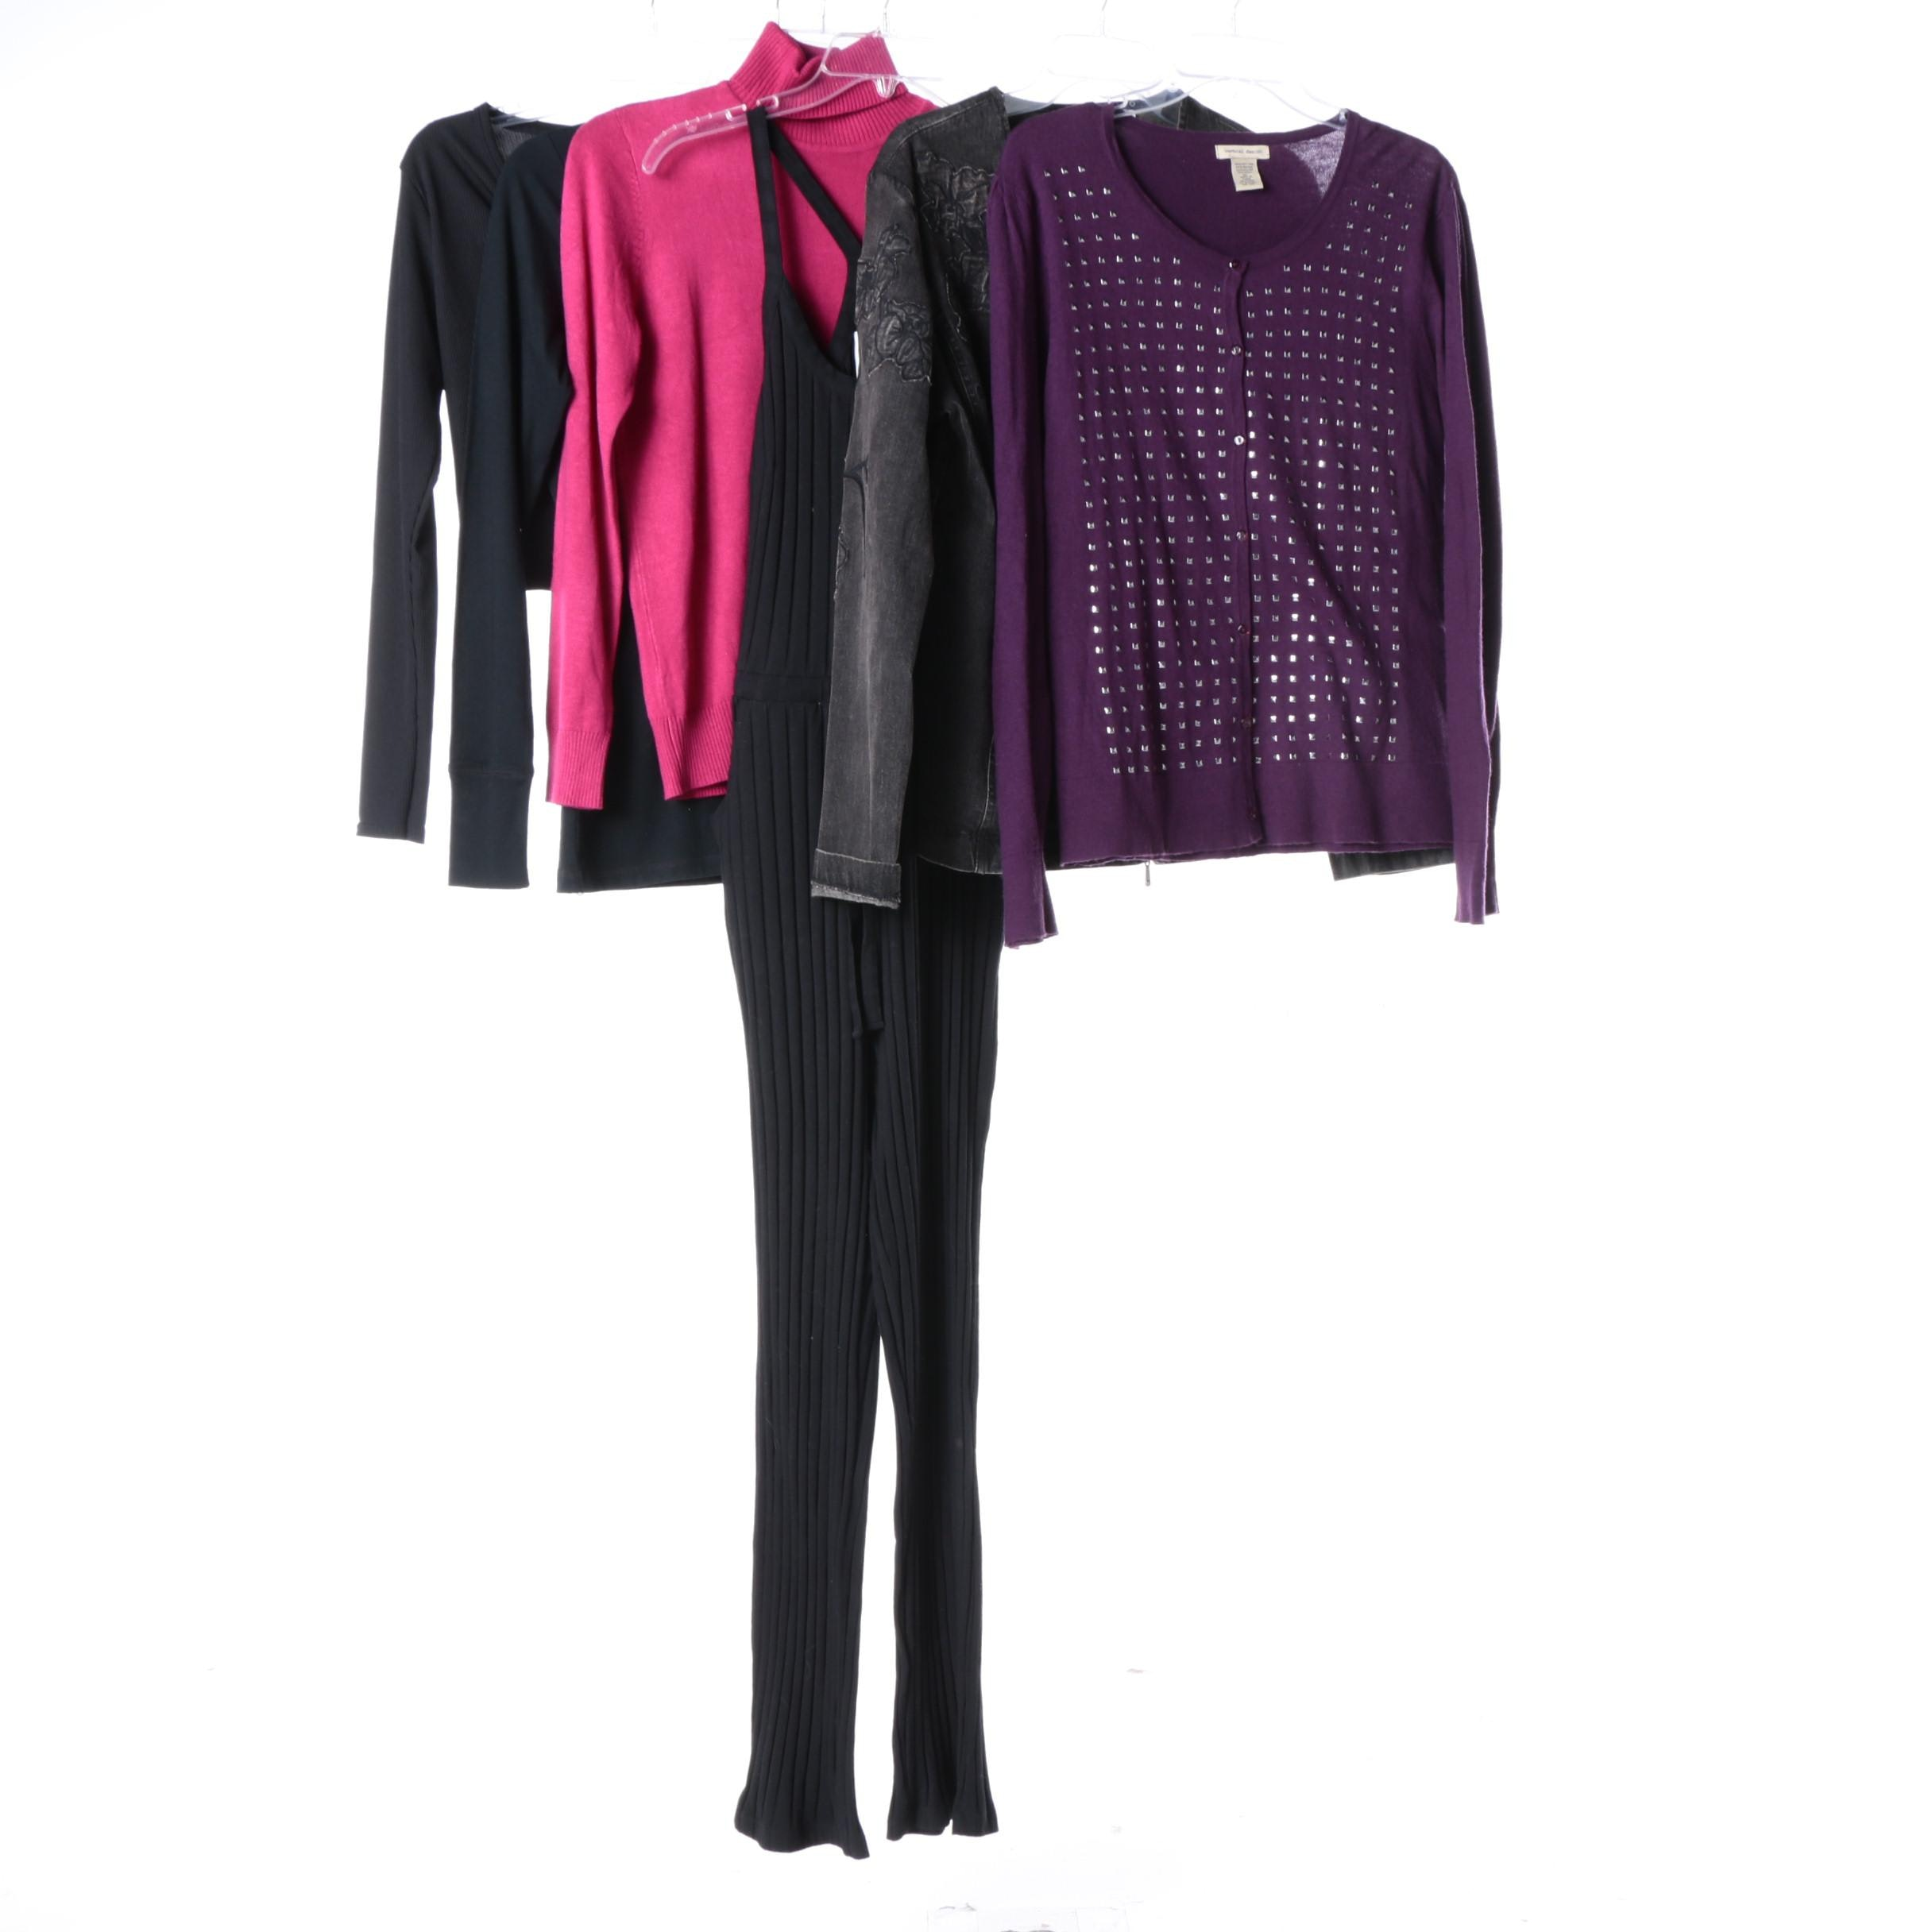 Women's Clothing Including Dana Buchman